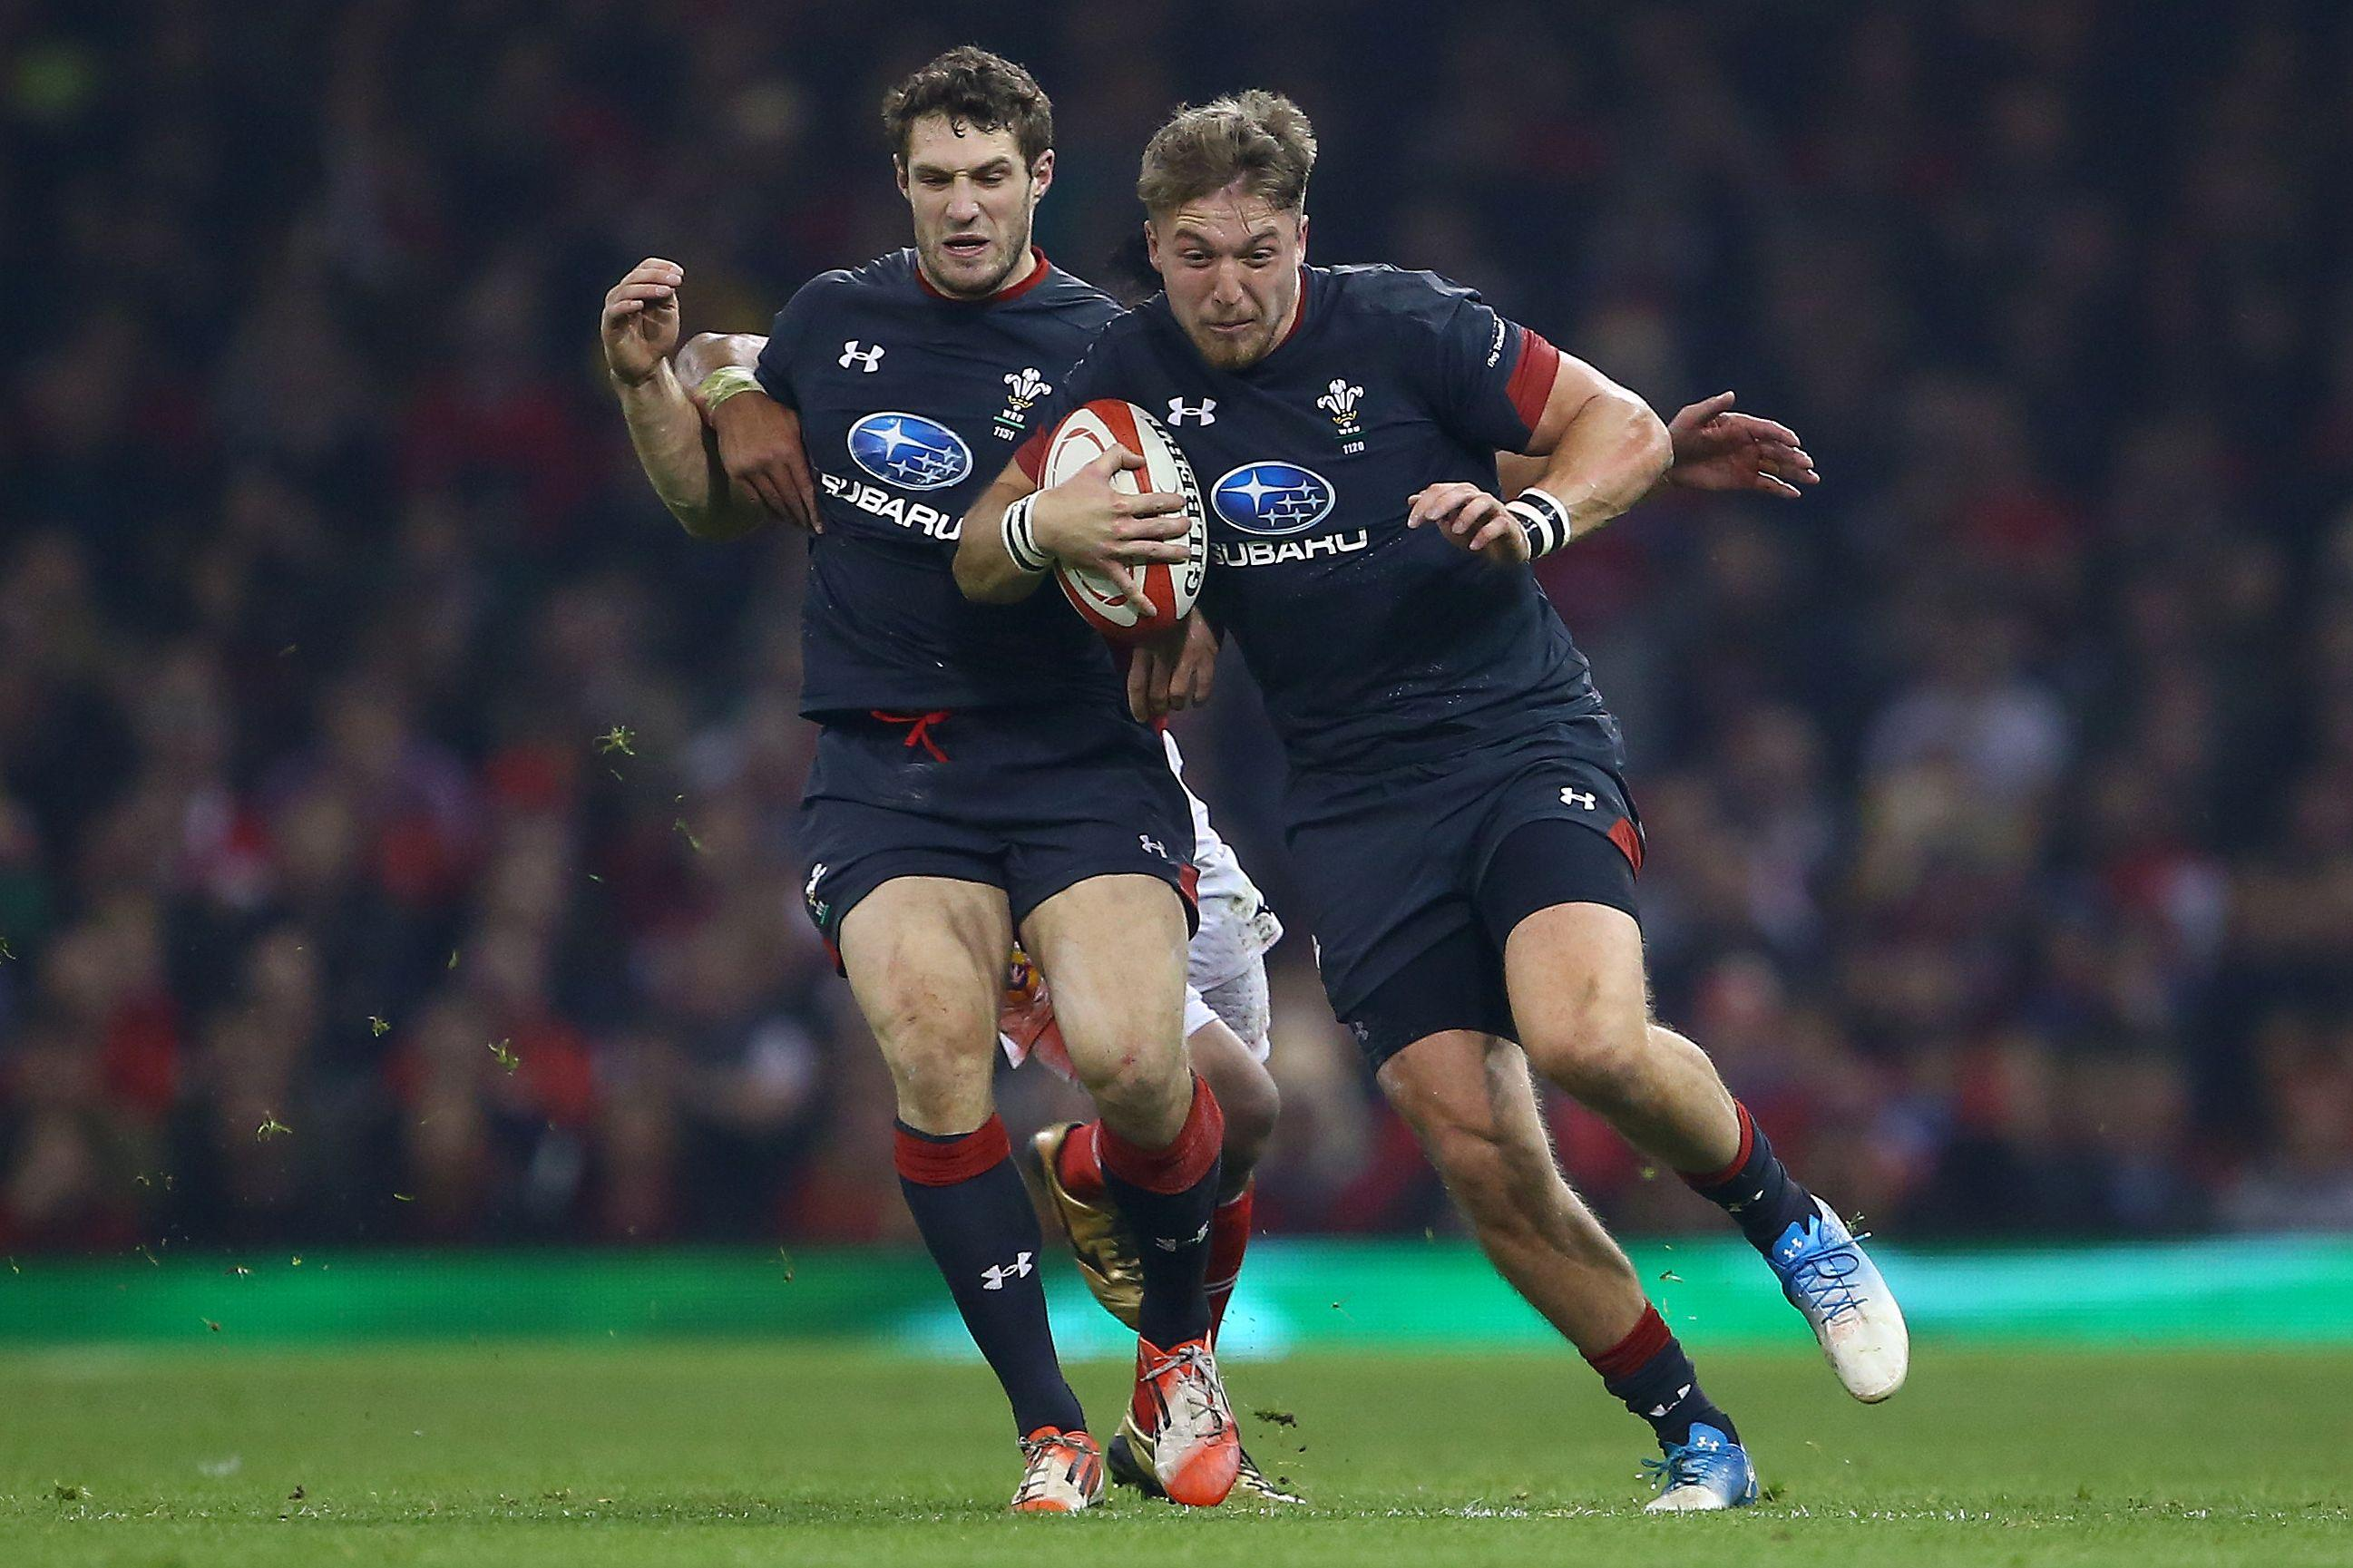 Wales ace Tyler Morgan in action during the 74-24 win over Tonga